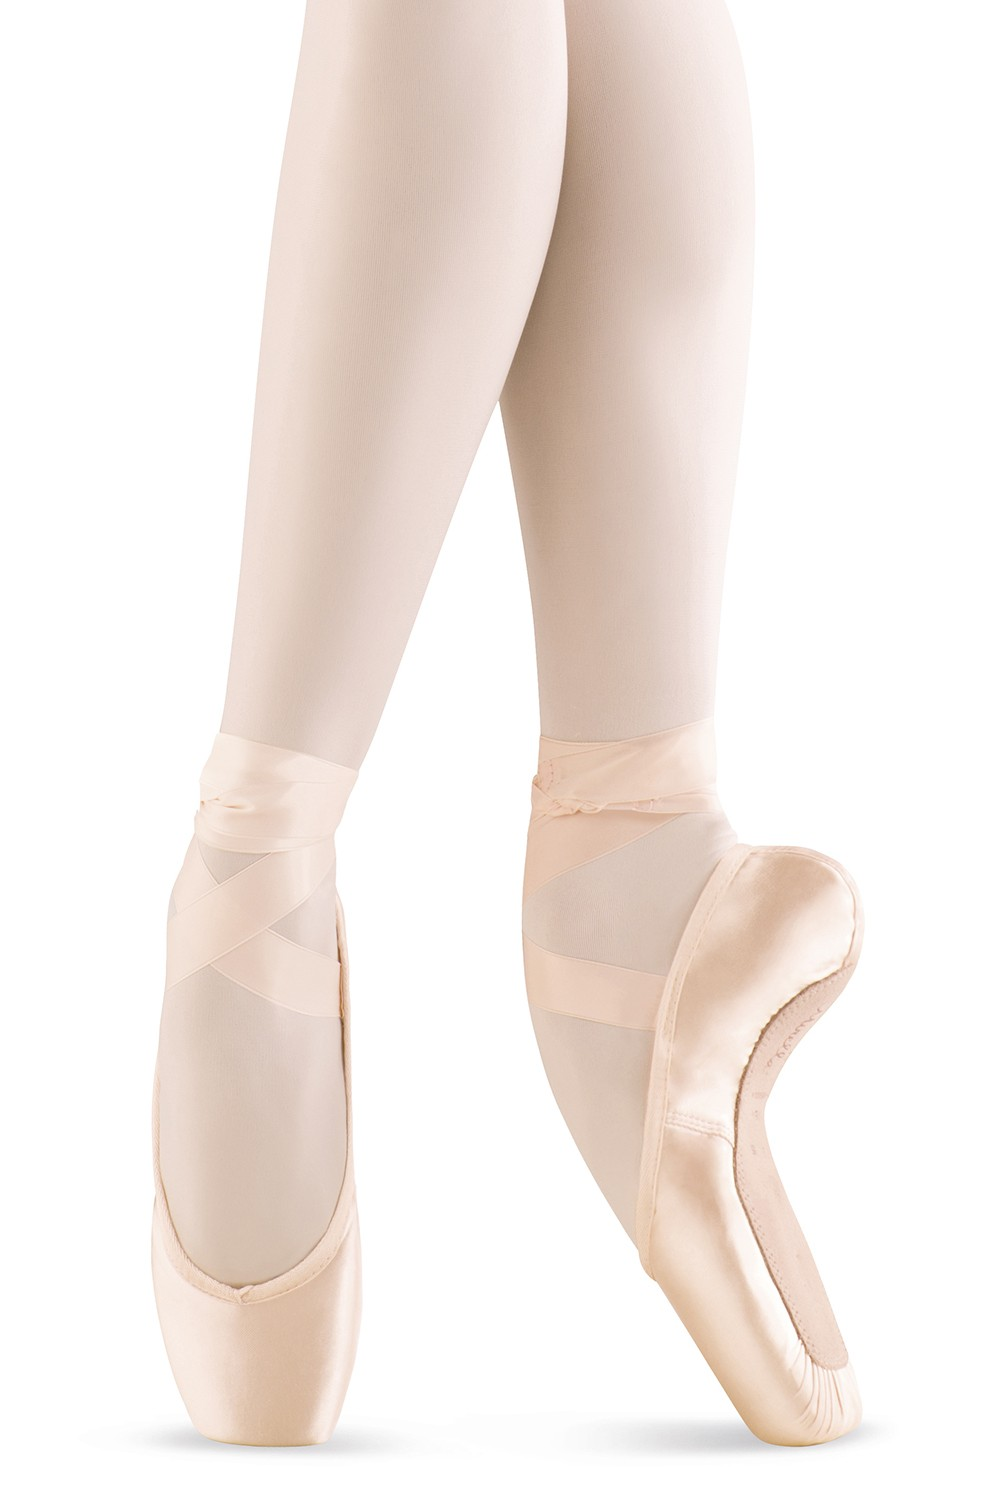 Advanced Pointe Shoes